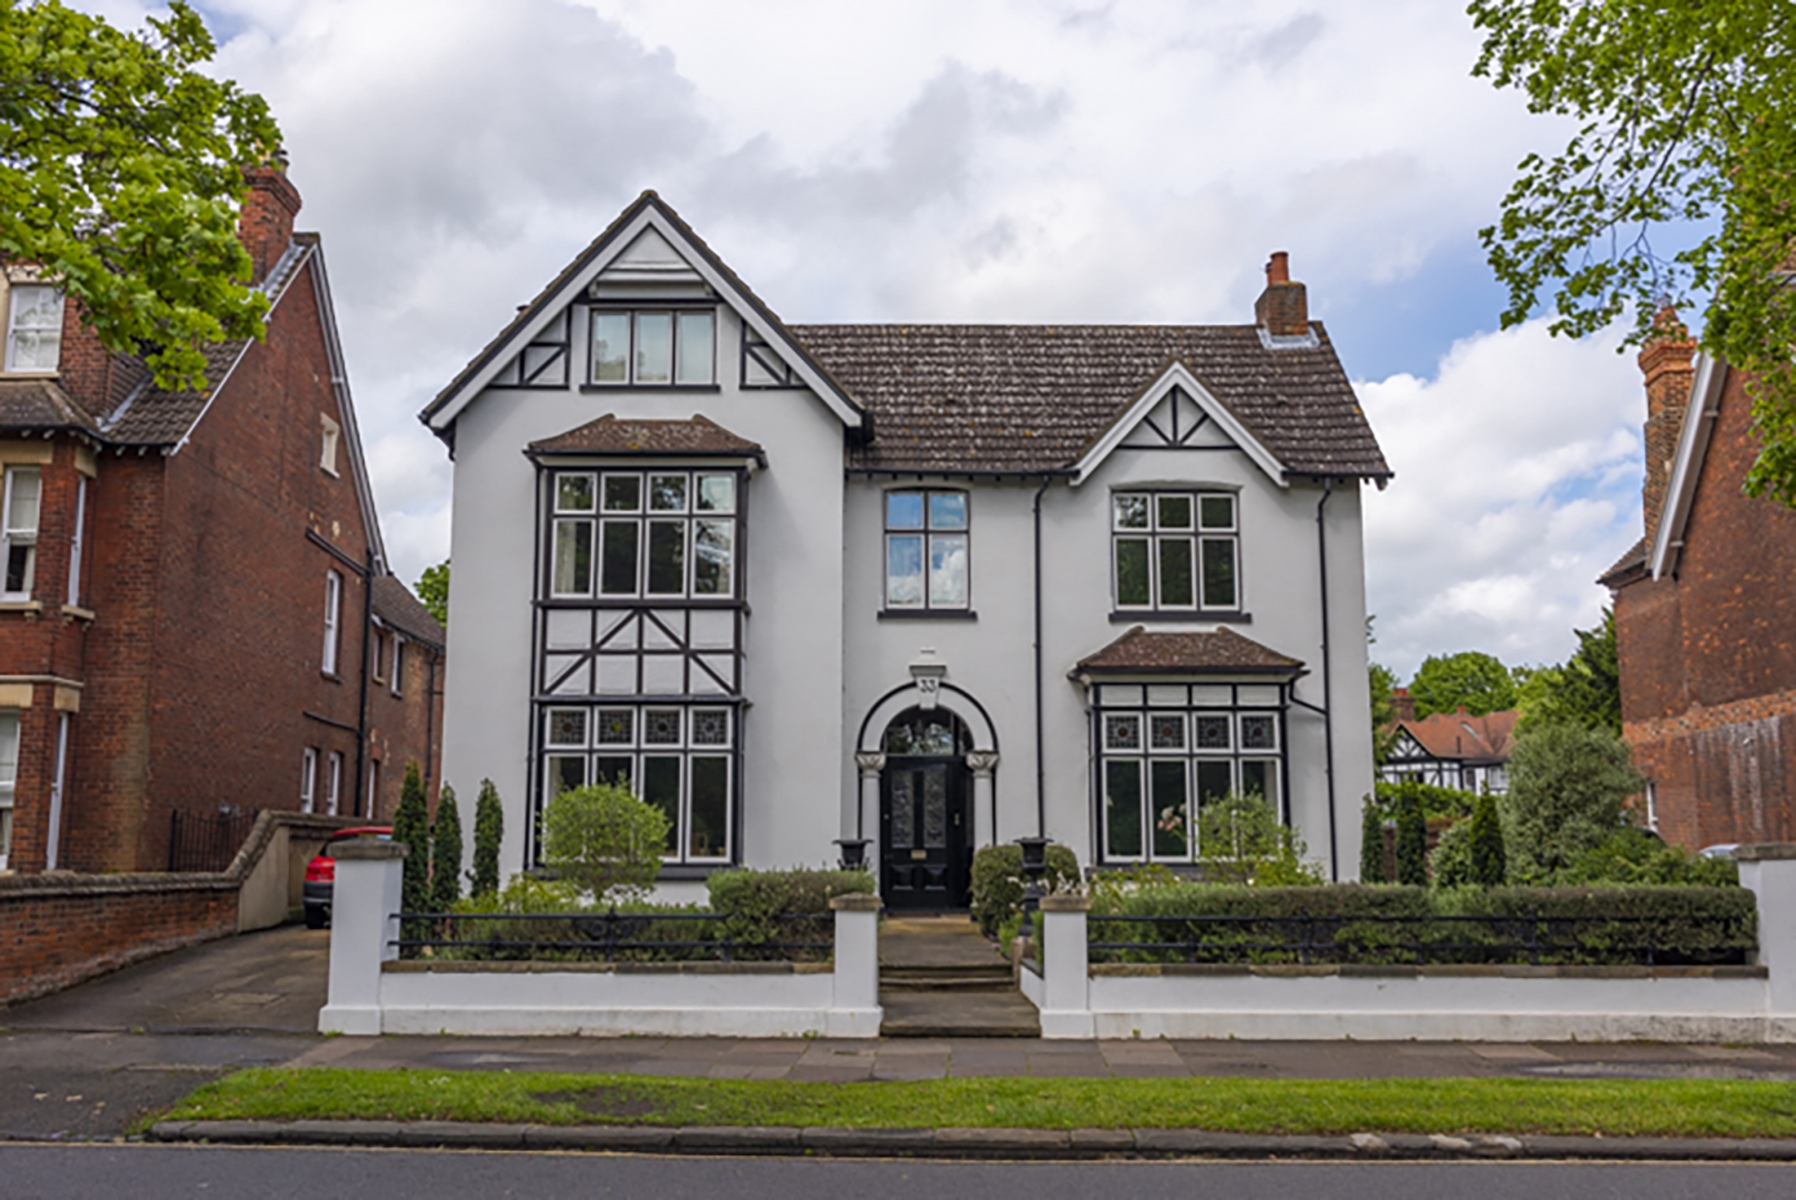 Detached house on The Embankment, Bedford